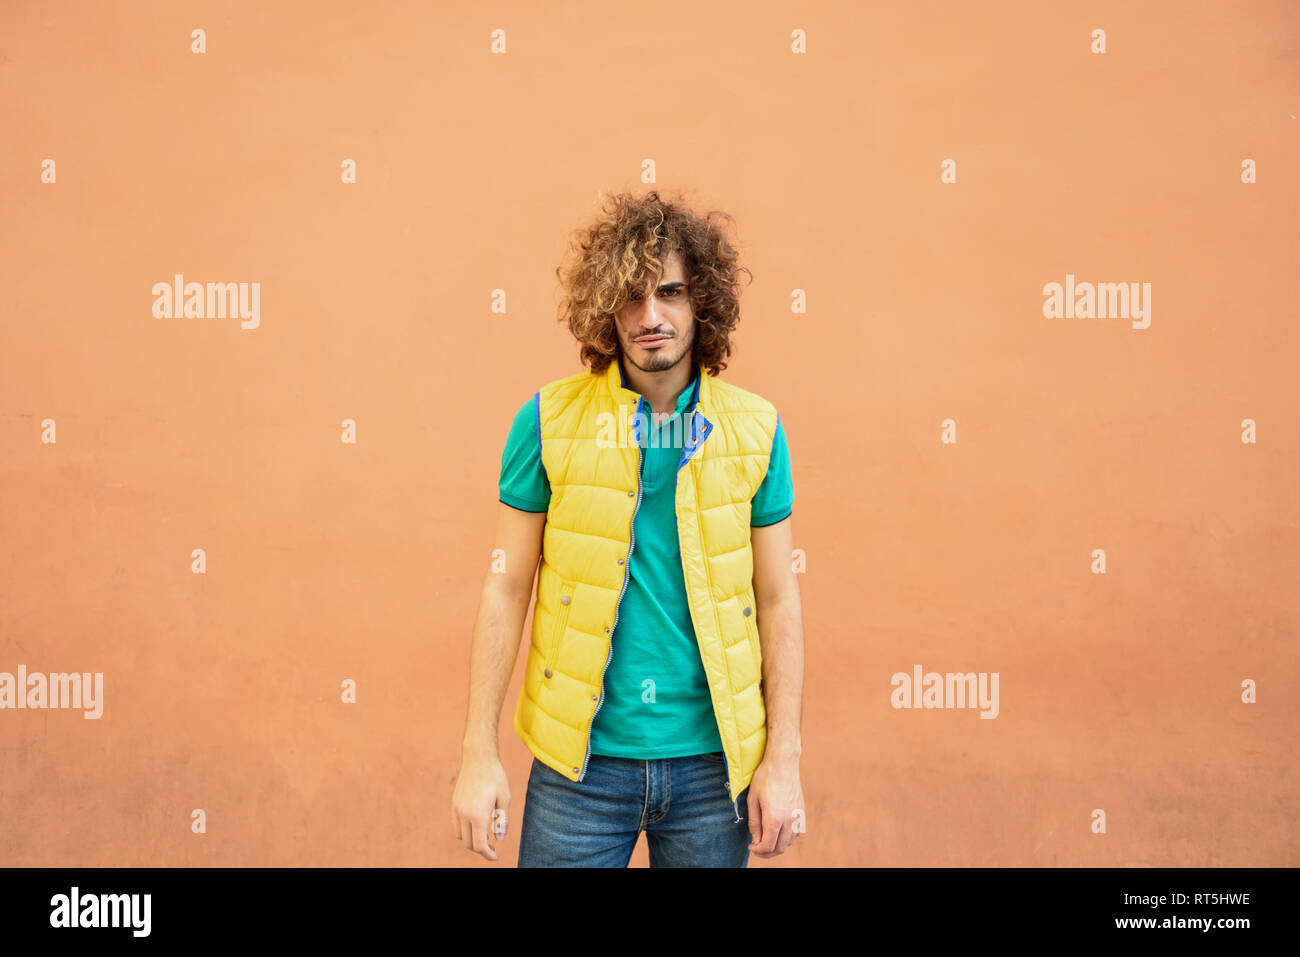 Portrait of annoyed young man with curly hair wearing yellow waistcoat outdoors - Stock Image